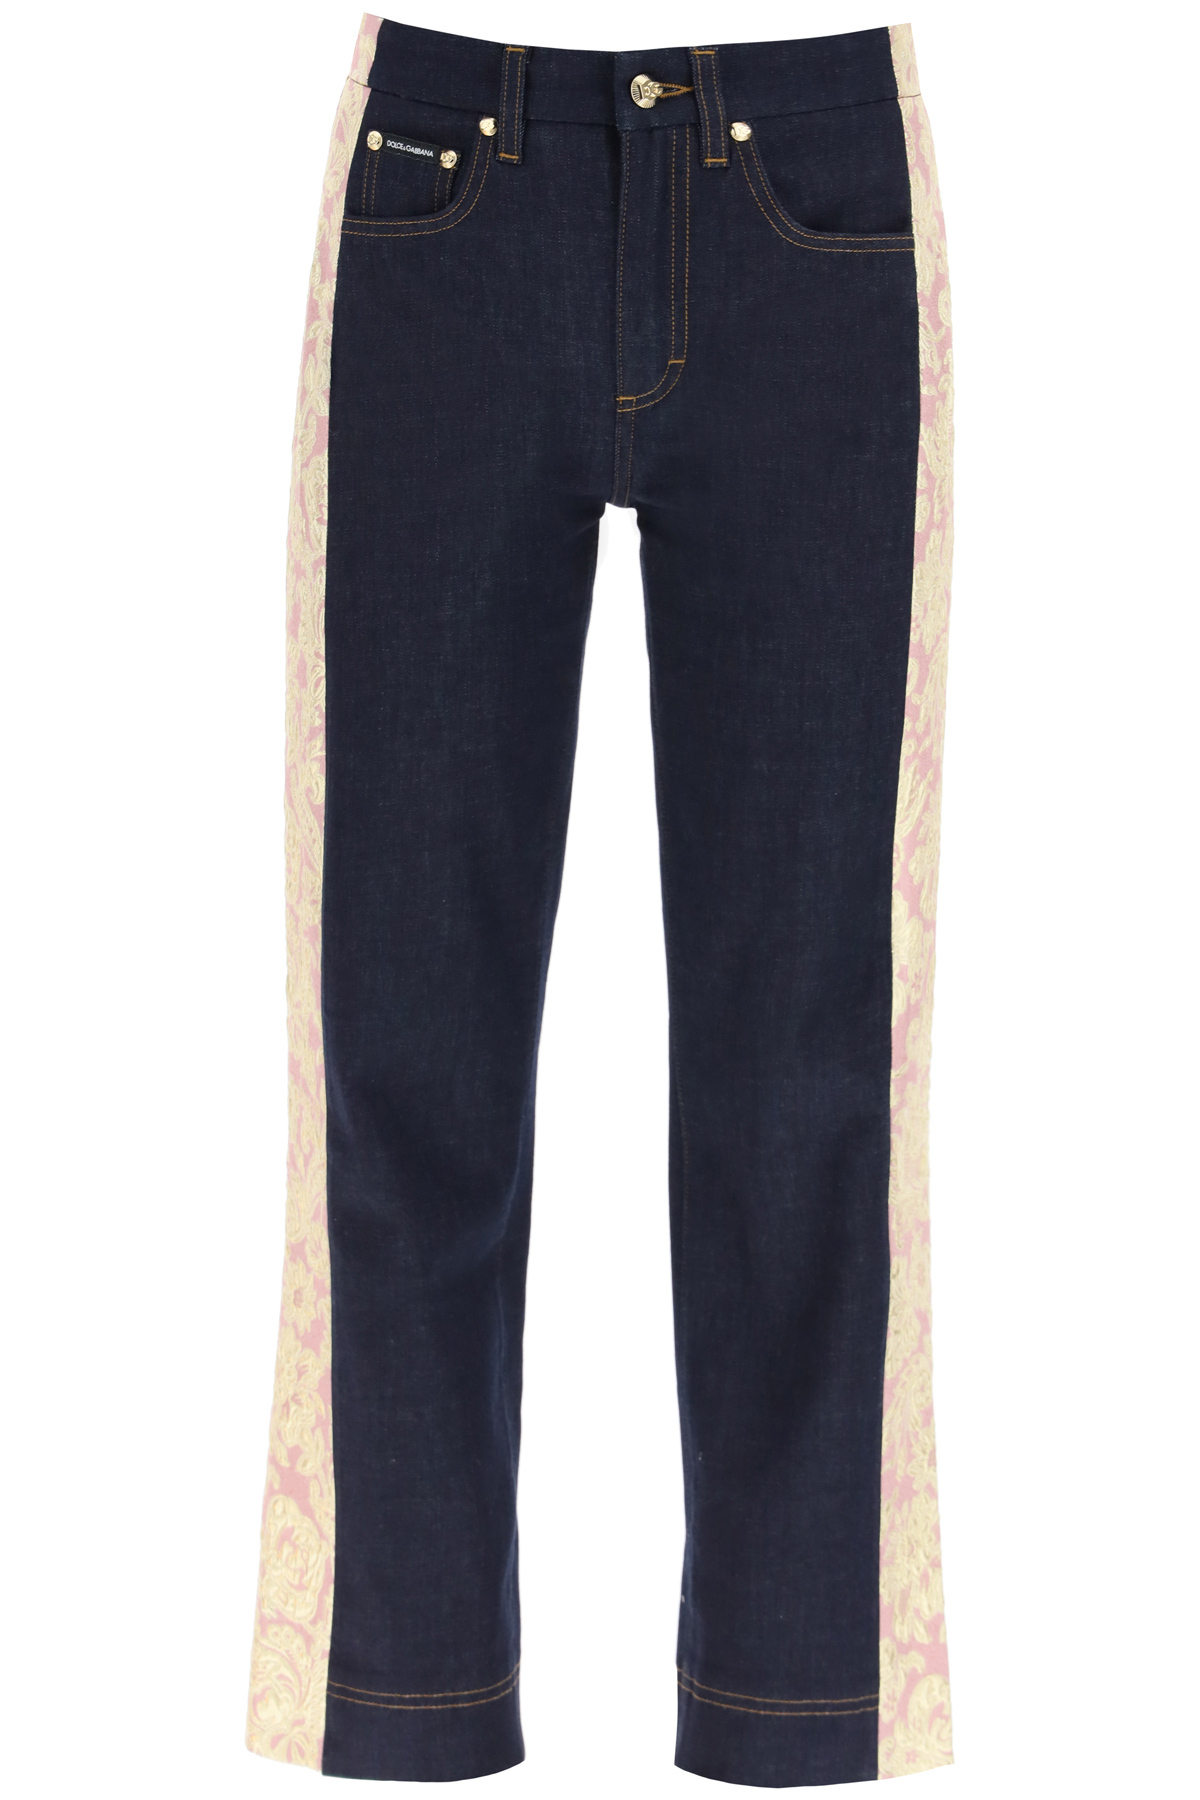 Dolce & Gabbana JEANS WITH BROCADE BANDS